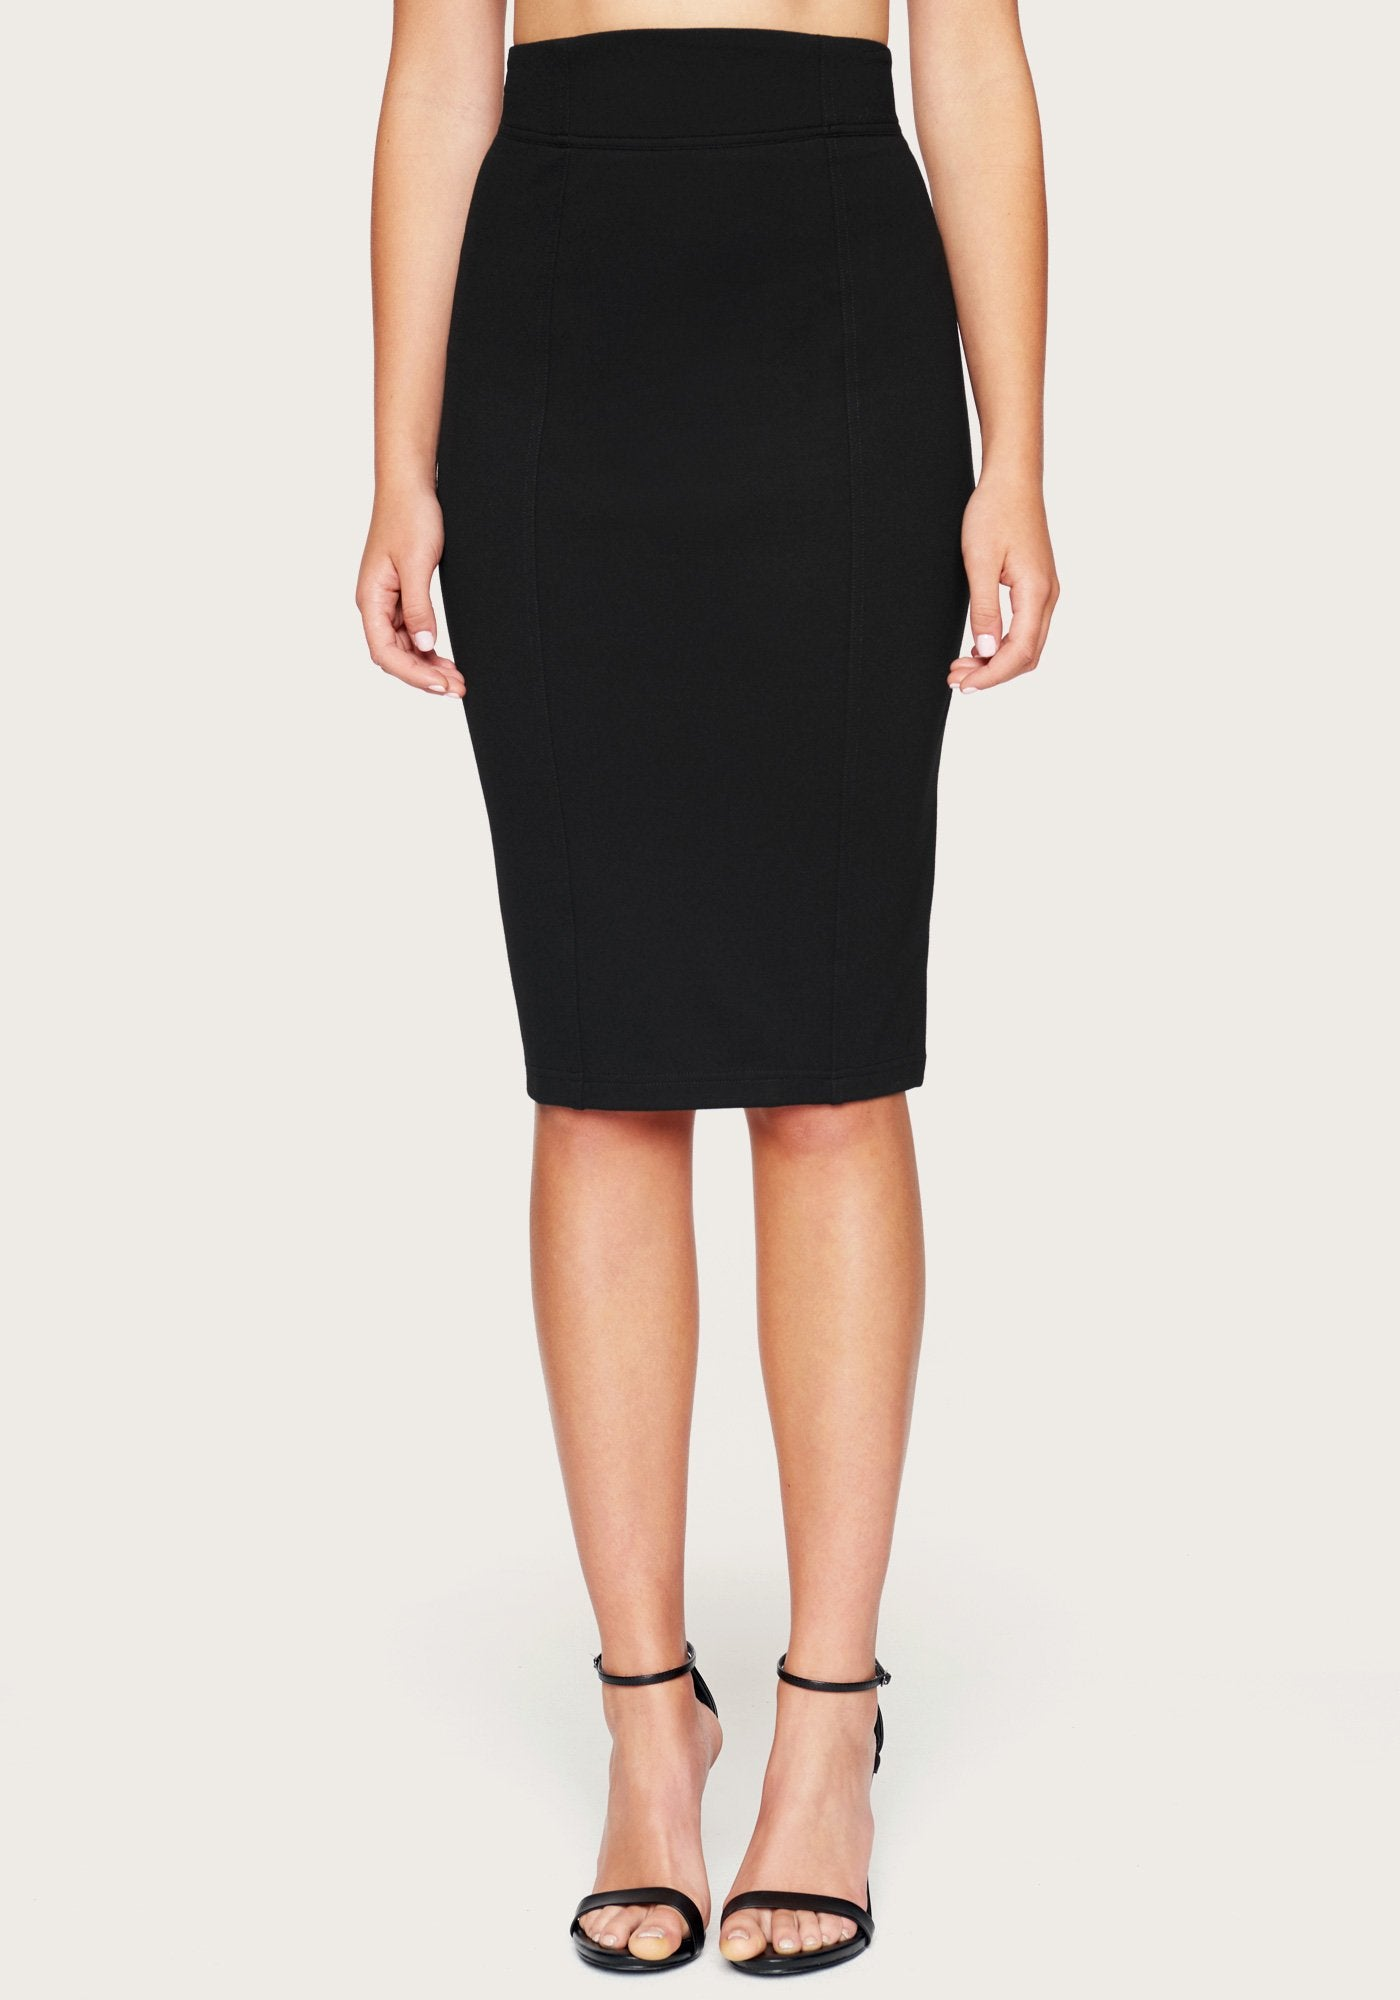 Bebe Women's Seamed Ponte Skirt, Size XXS in Black Spandex/Nylon